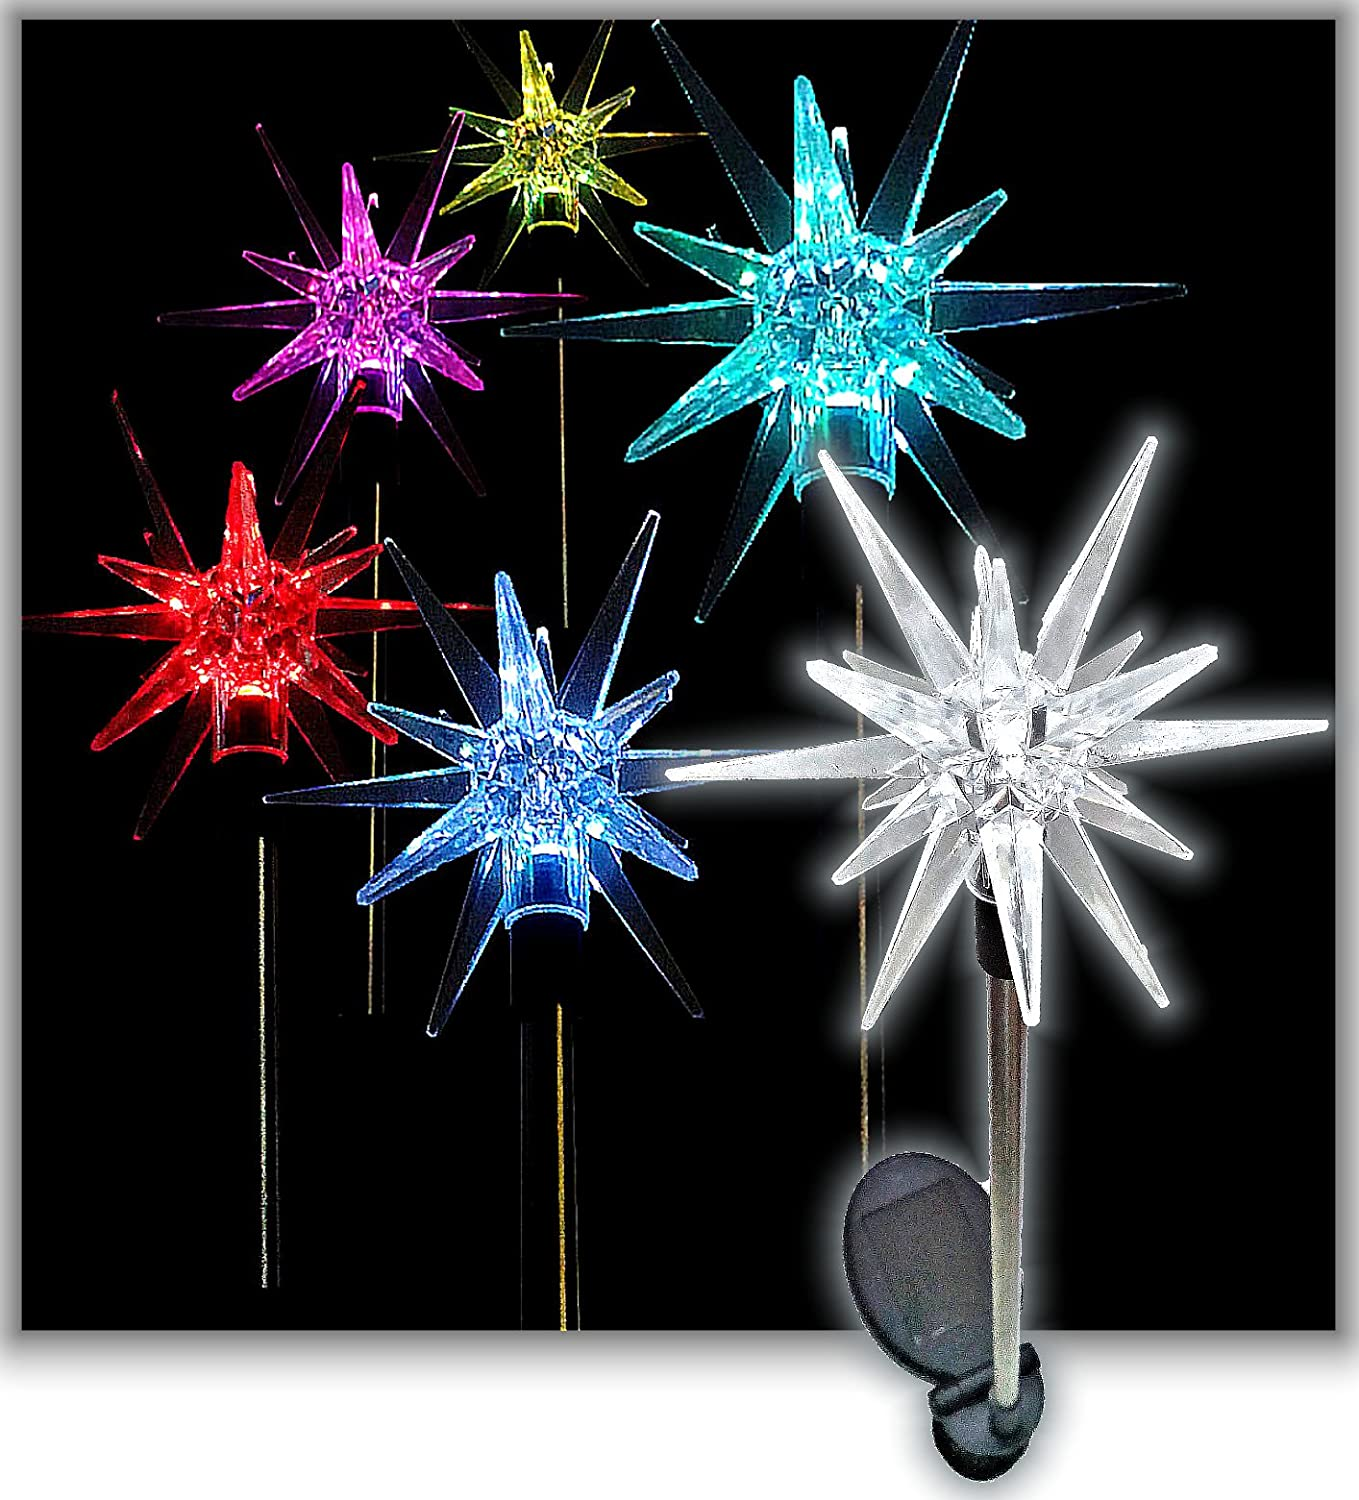 amazoncom sparkling solar star lights garden stake set of 4 garden outdoor - Christmas Stake Lights